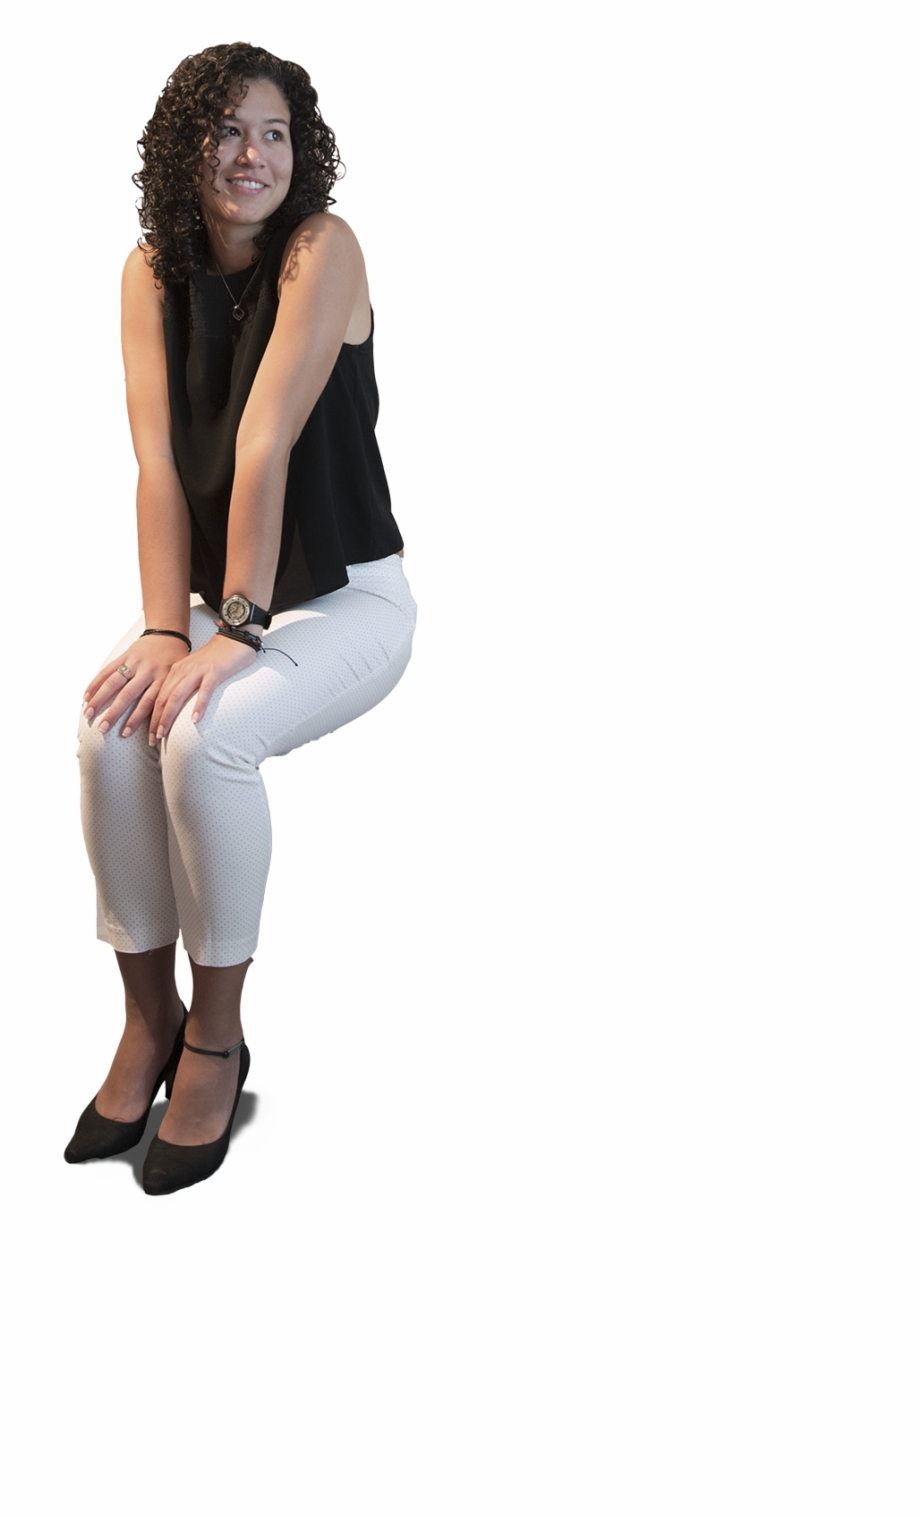 High Res Free People Cutouts Nice Lady Sitting Png.